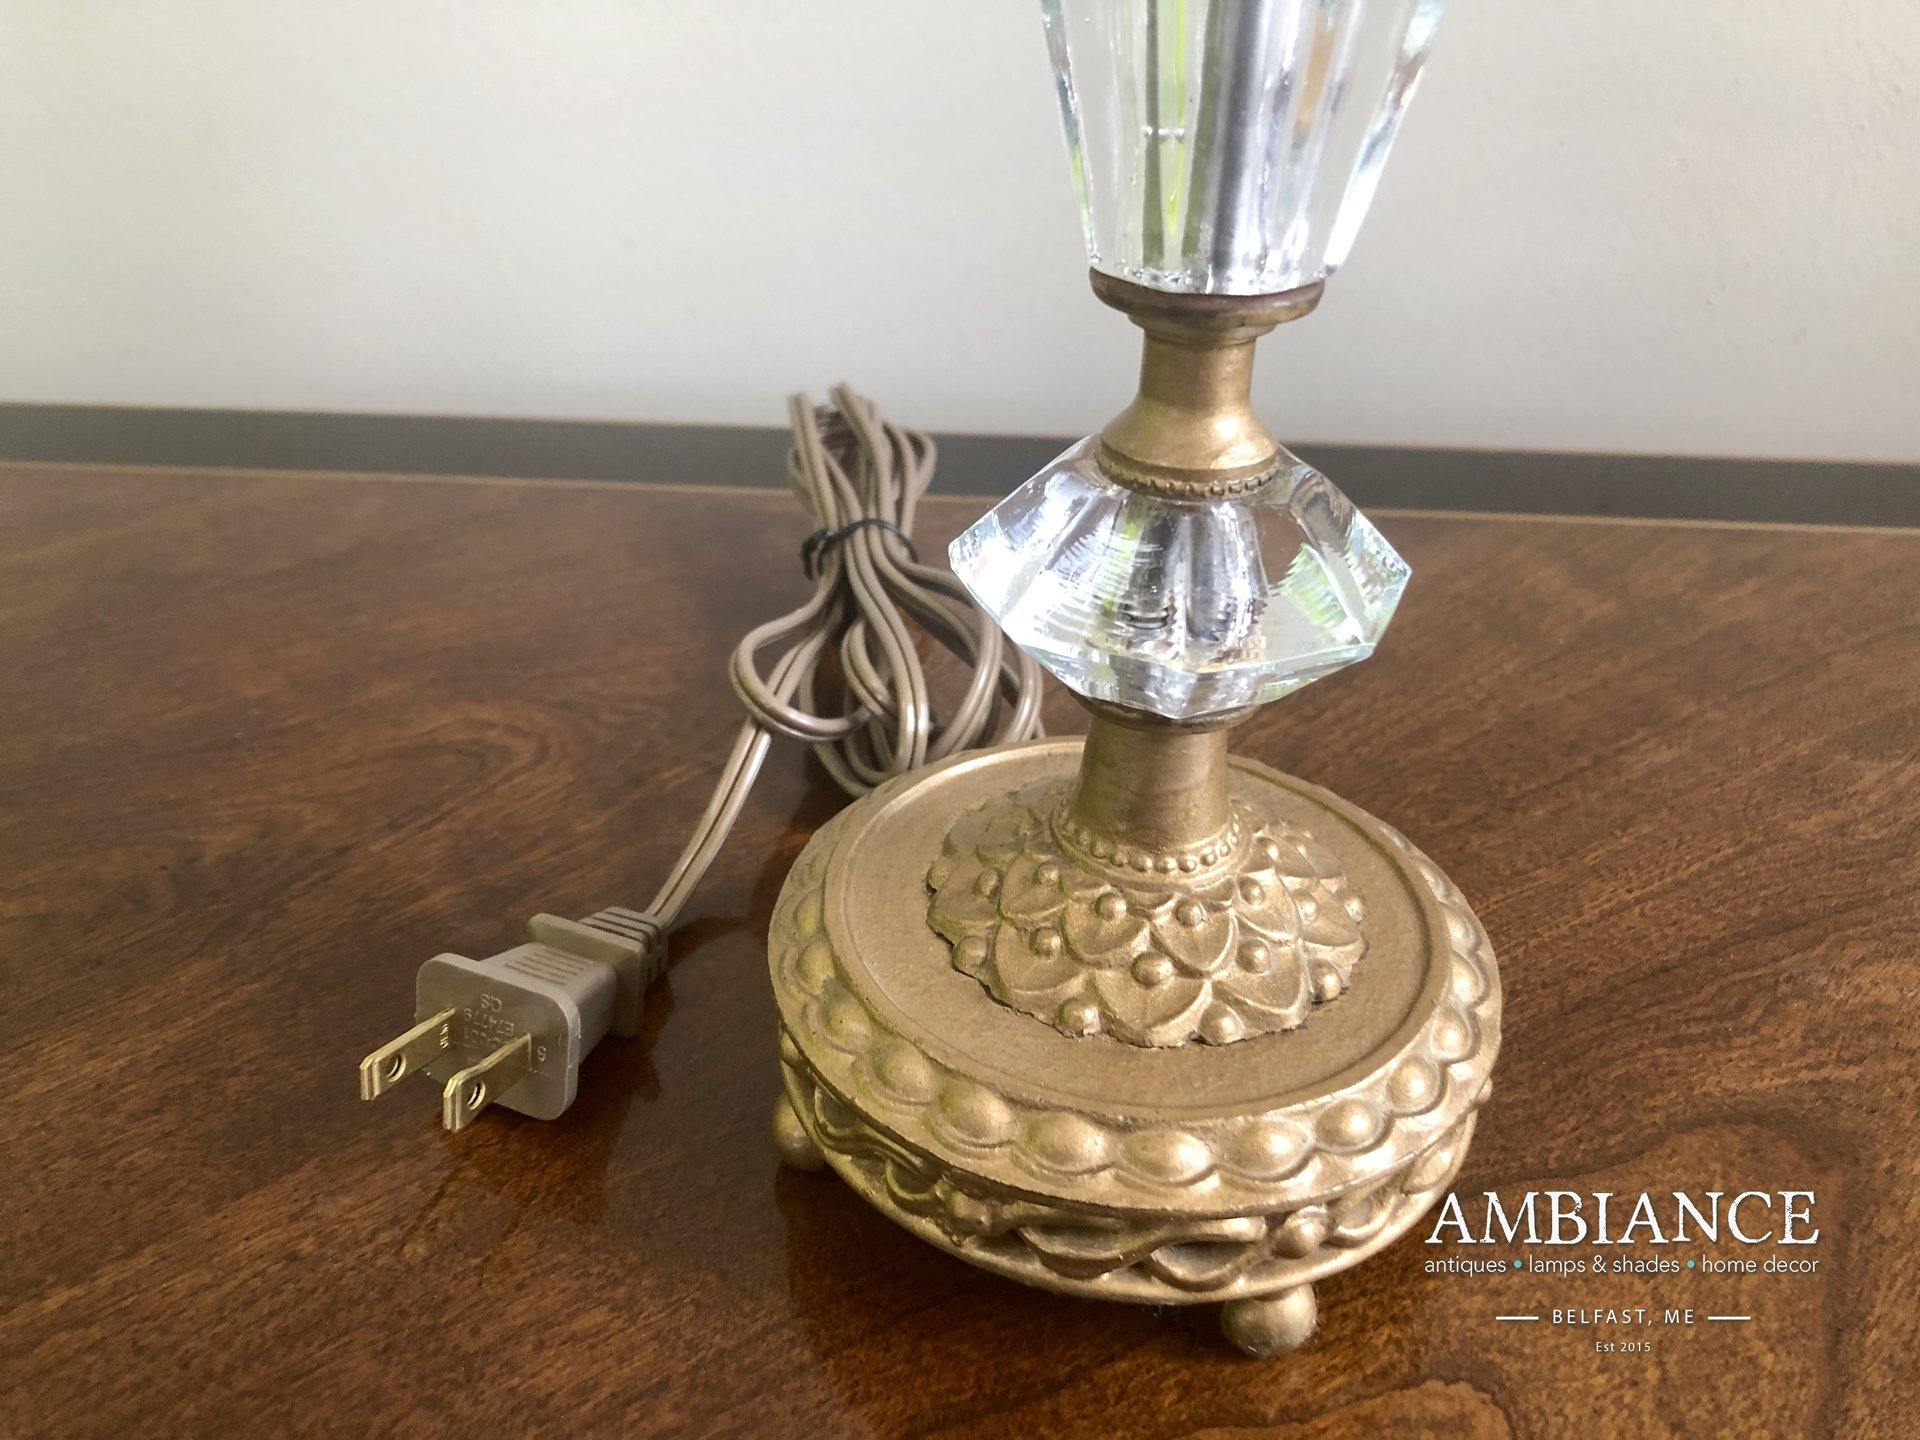 Vintage Crystal Lamp with Ornate Gilded Base at AMBIANCE (01)